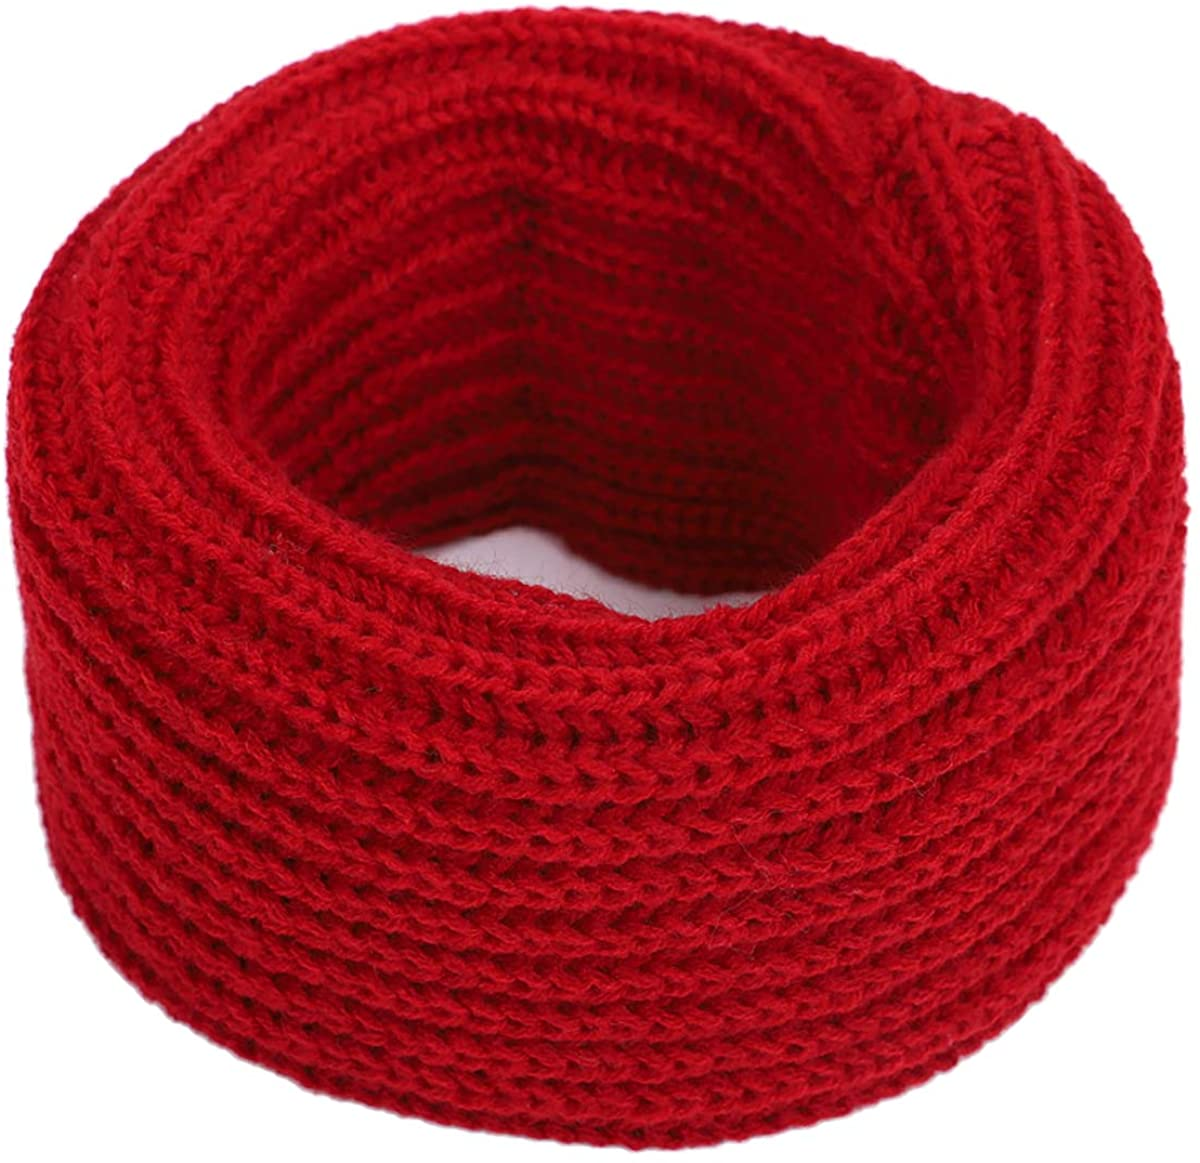 LKXHarleya Baby Kids Solid Color Cable Winter Knit Infinity Scarf Neck Warmer